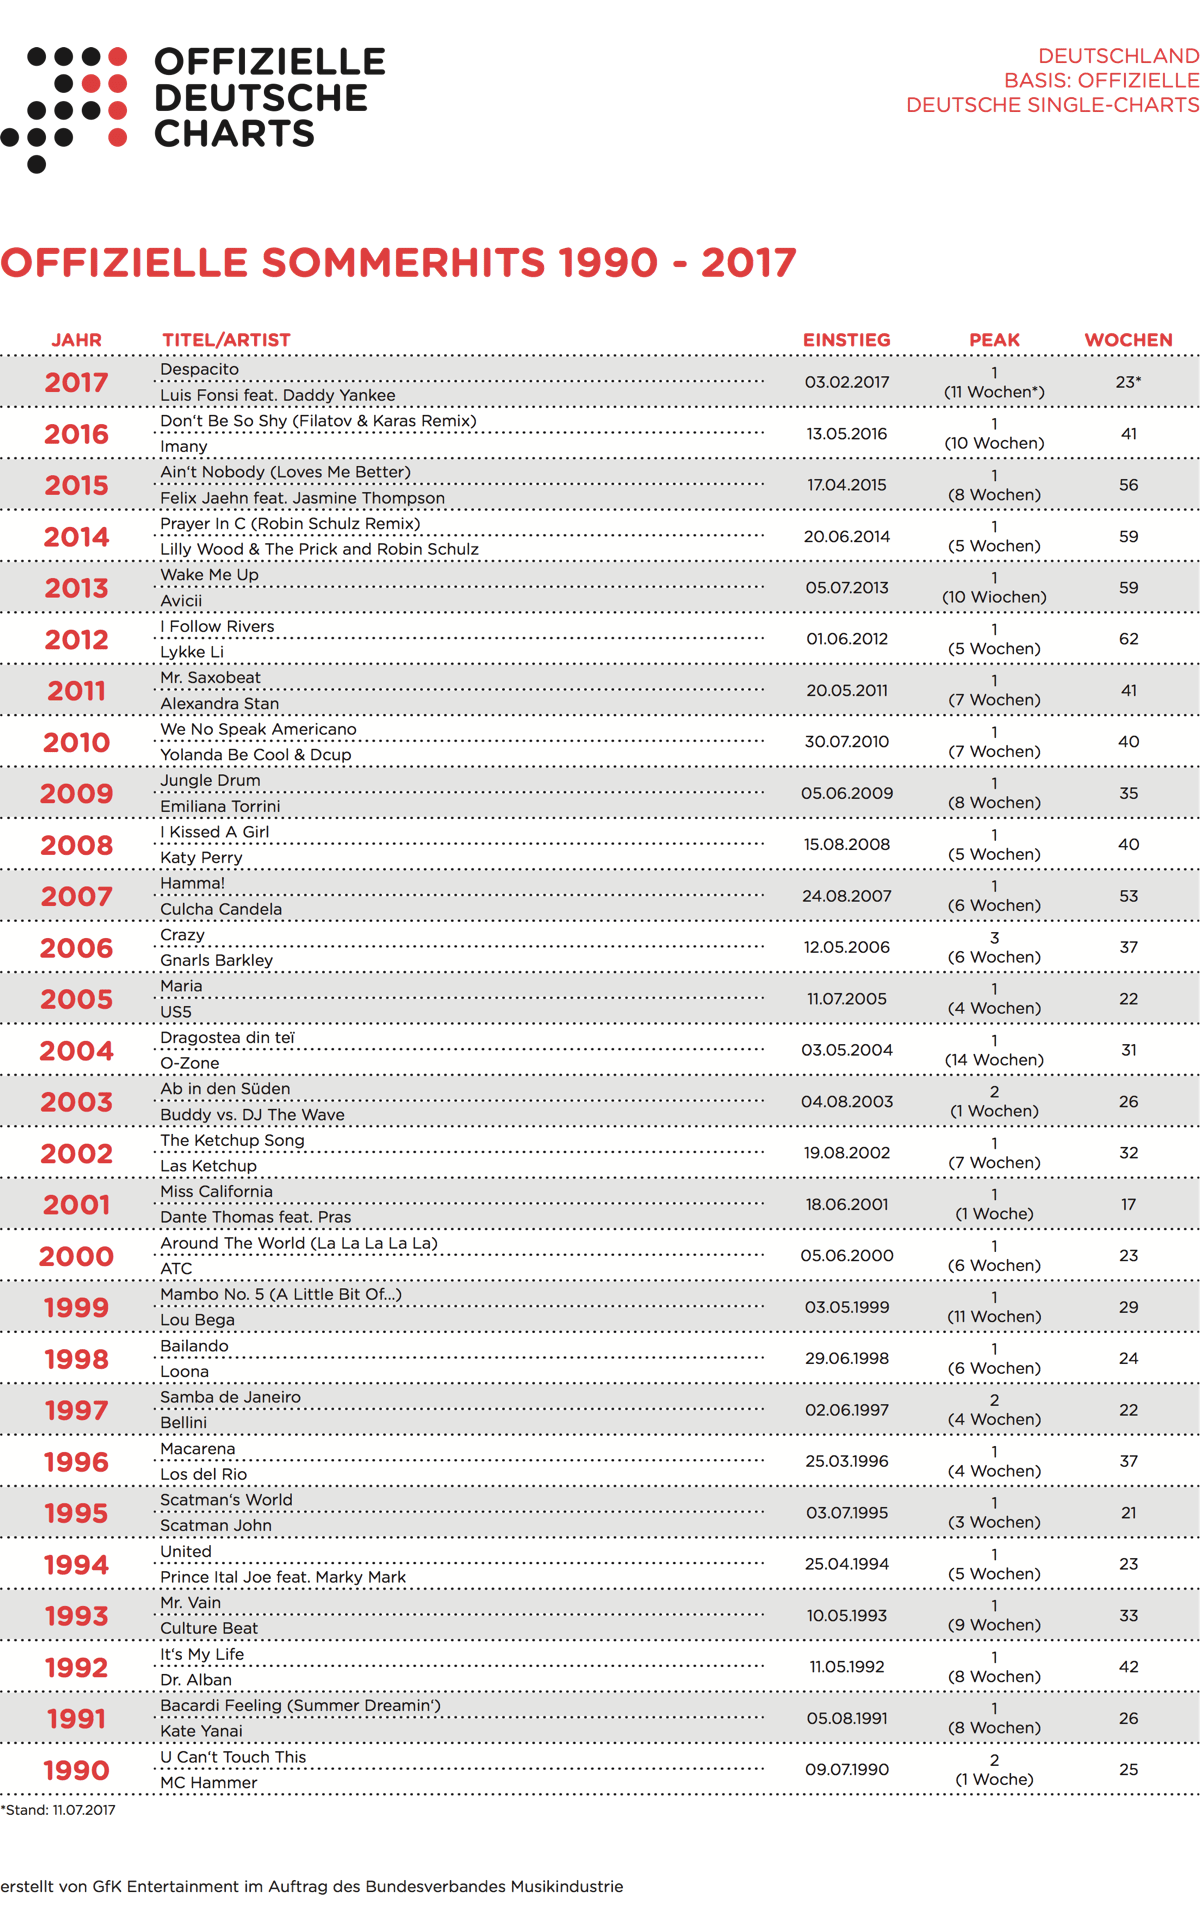 Offizielle Sommerhits 1990-2017